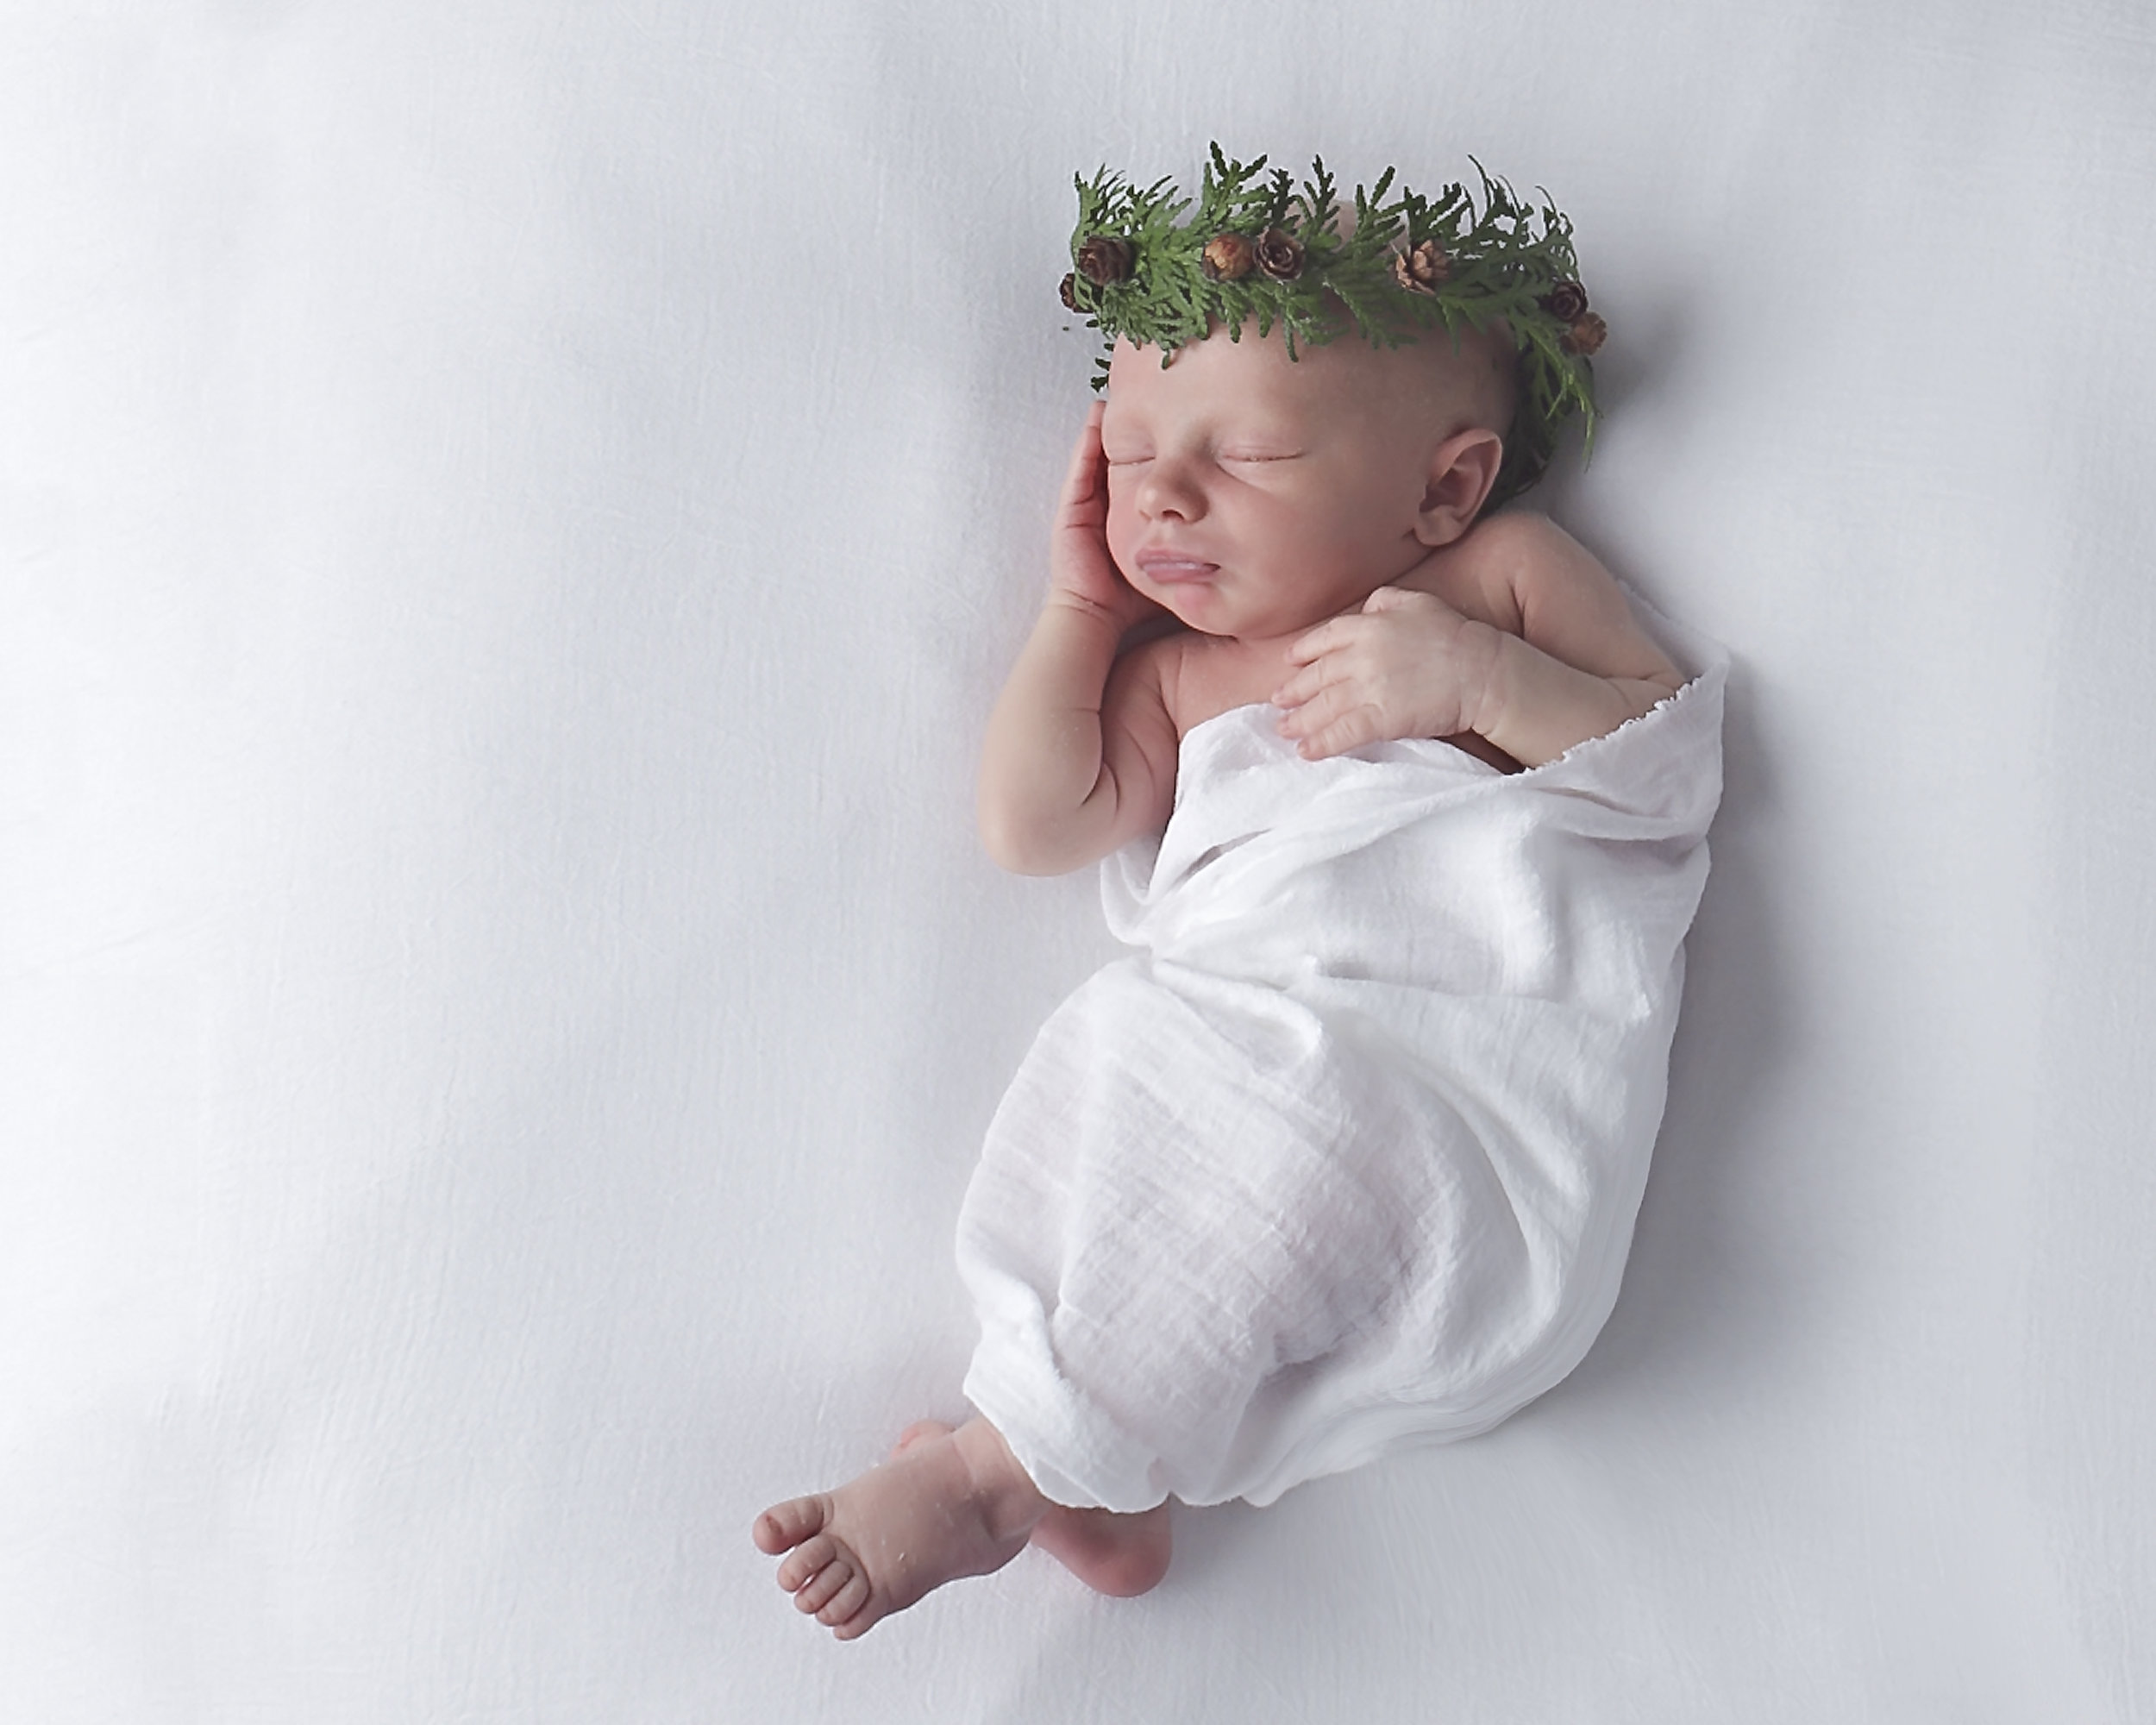 Oshawa_Aidebodycare_Newborn_Babyboy_Portrait